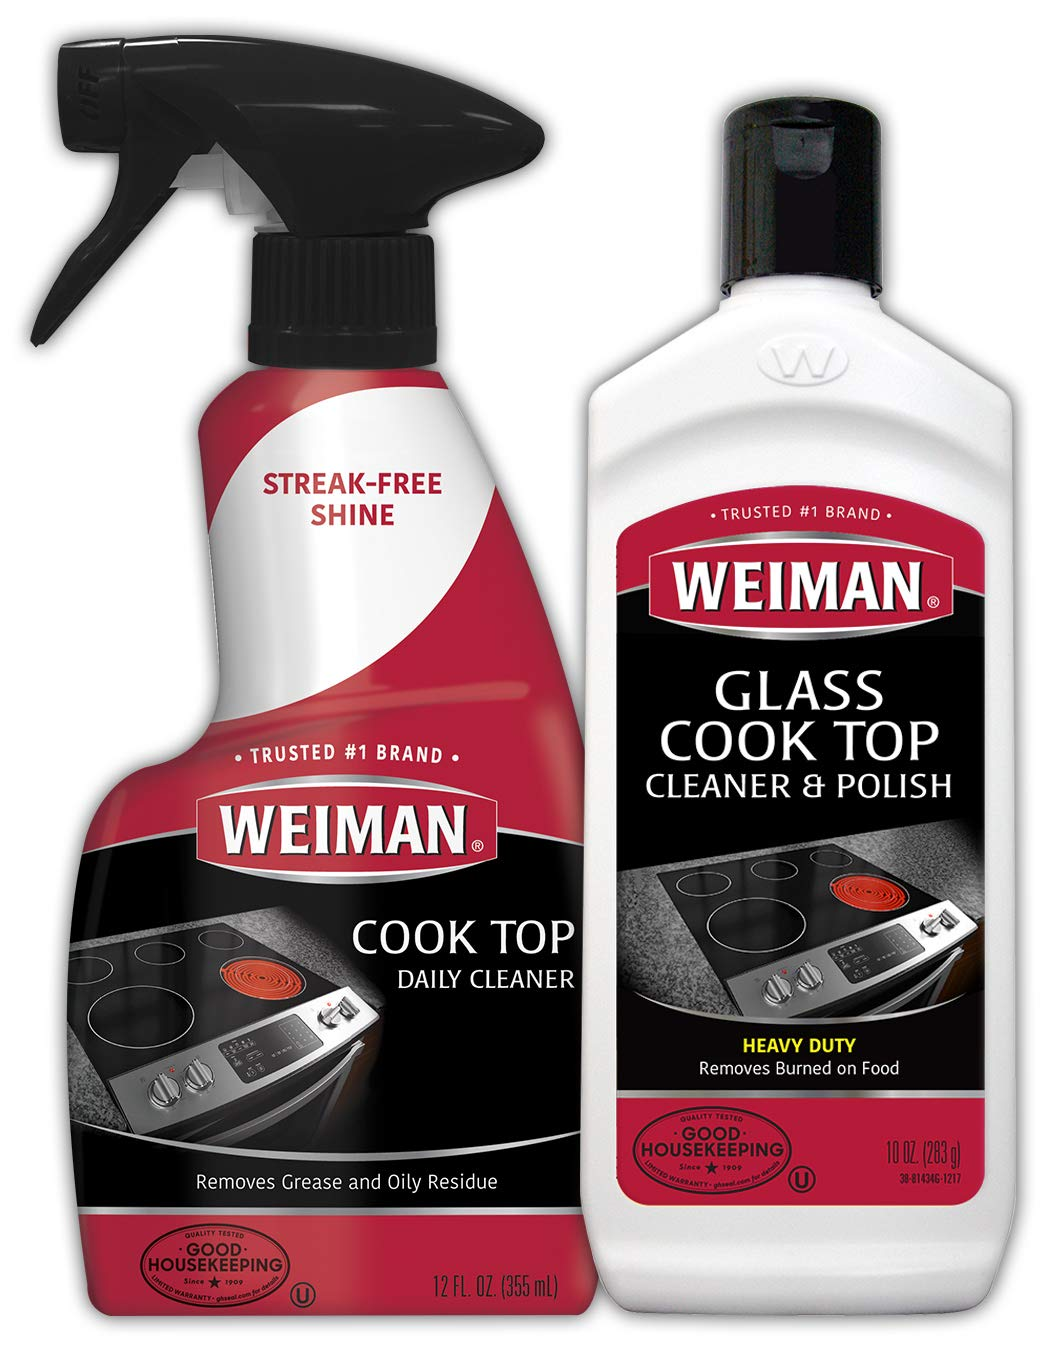 Weiman Ceramic and Glass Cooktop Cleaner - 10 Ounce - Stove Top Daily Cleaner Kit - 12 Ounce - Glass Ceramic Induction Cooktop Cleaning Bundle for Heavy Duty Mess Cleans Burnt-on Food by Weiman